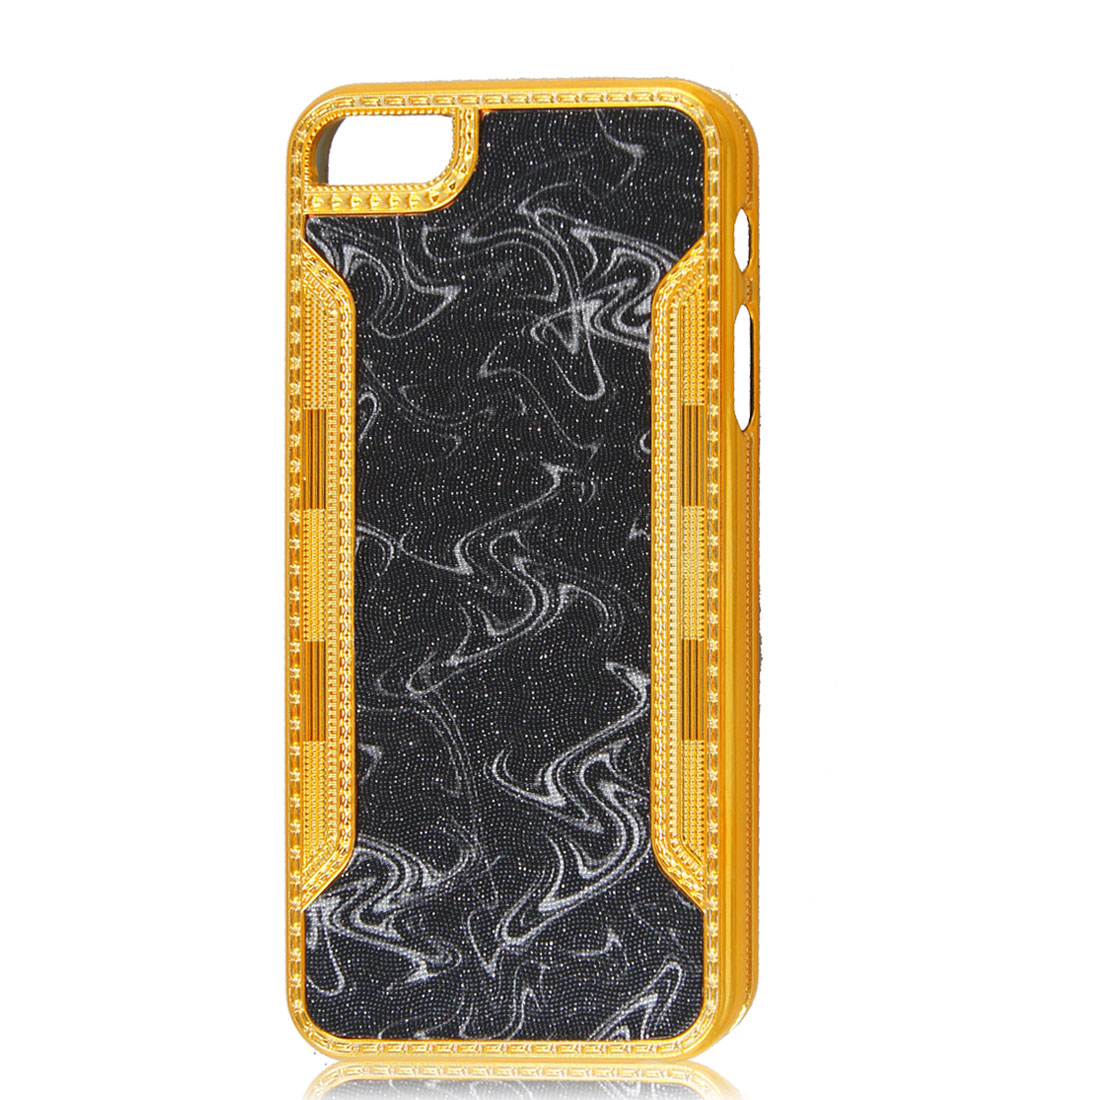 Black Bling Hard Back Case Cover for iPhone 5 5G 5th Gen